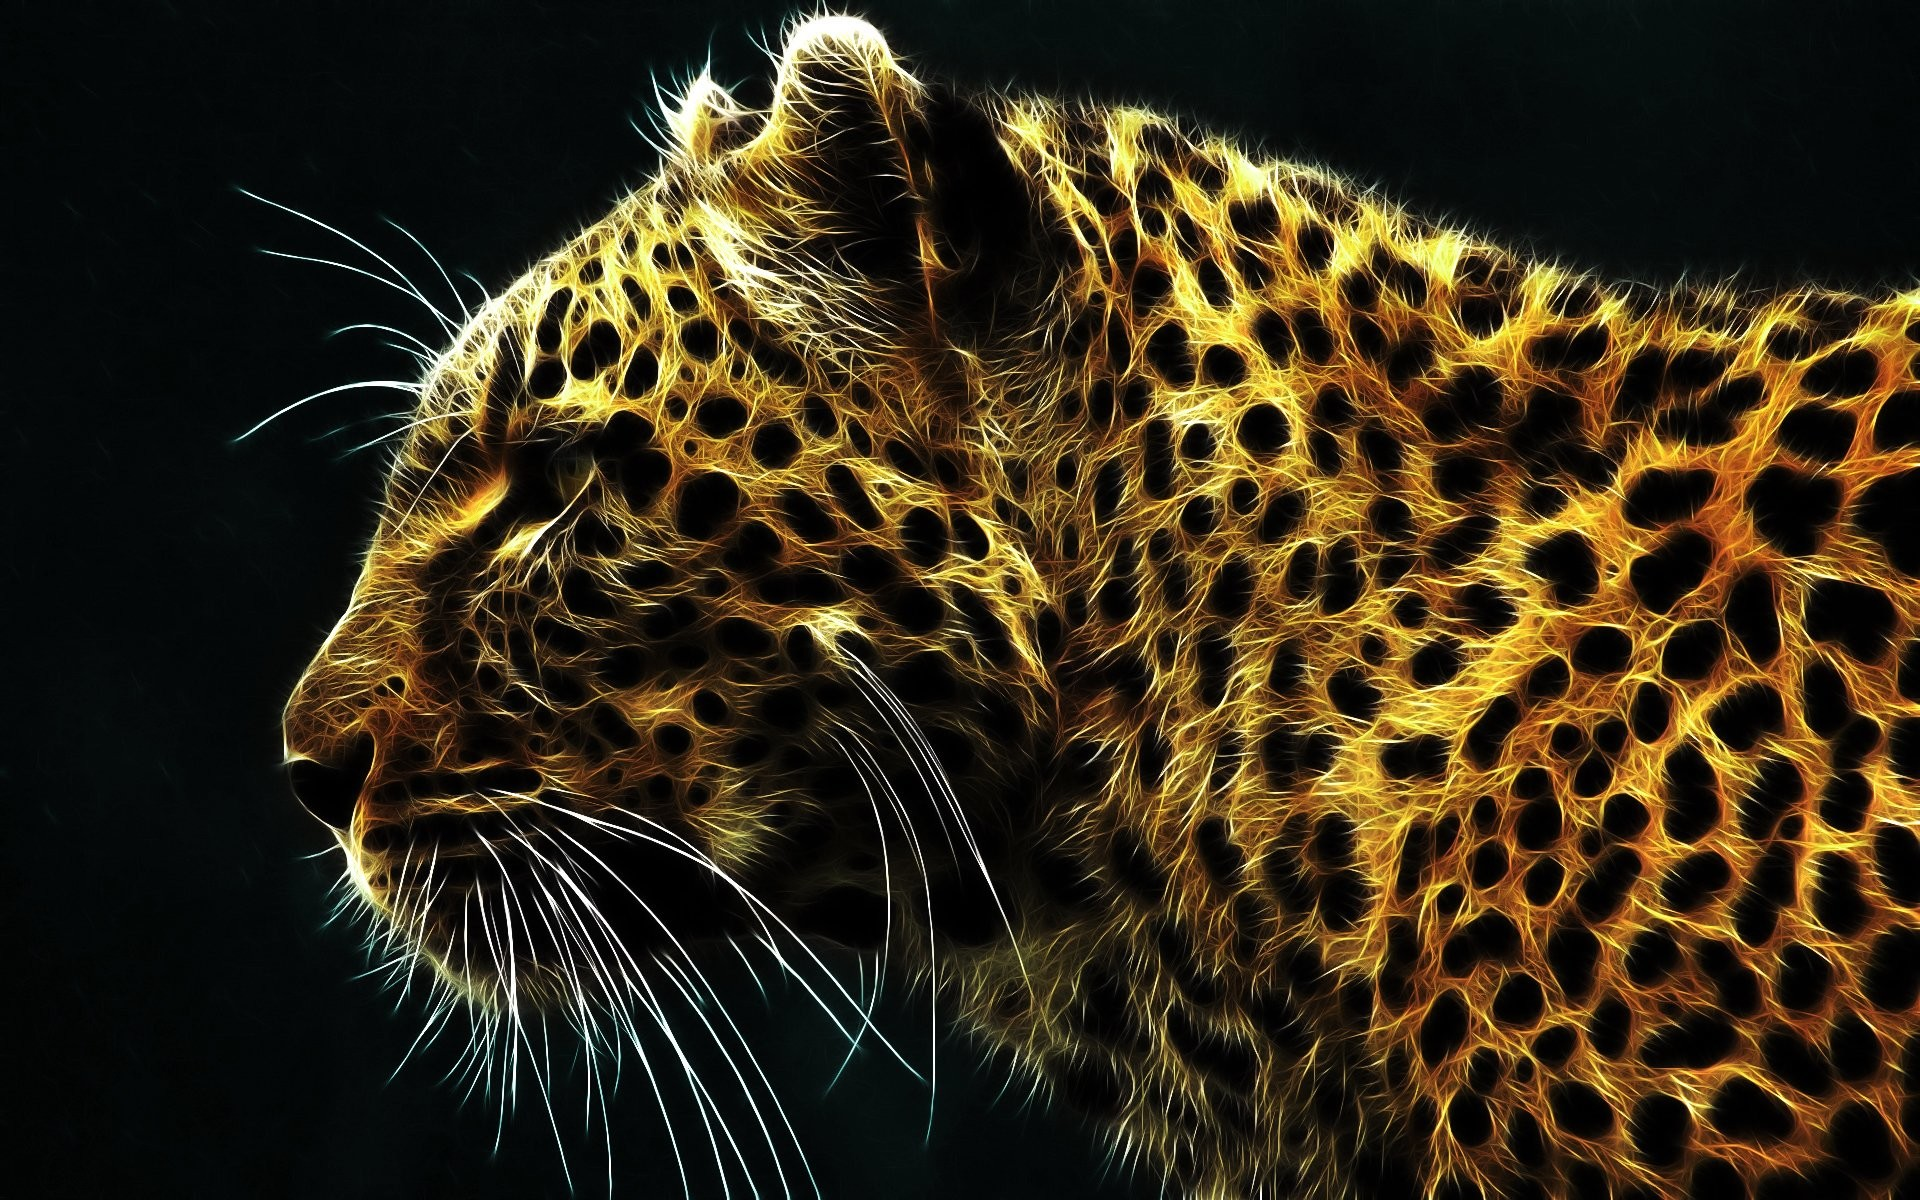 1920x1200 Tiere - Leopard predator (Animal) Tiere Big Cat Wallpaper